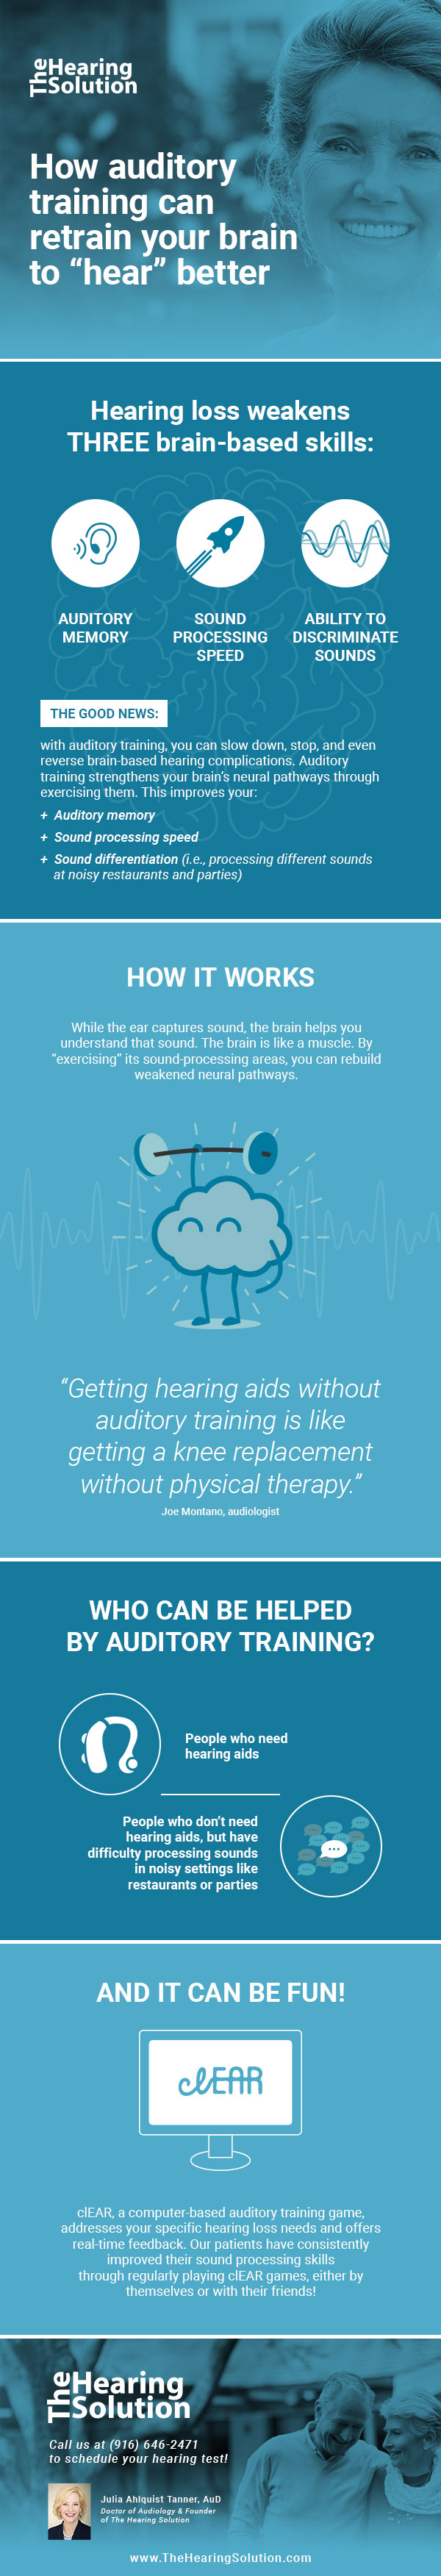 Auditory Training to Retrain Your Brain Infographic - The Hearing Solution